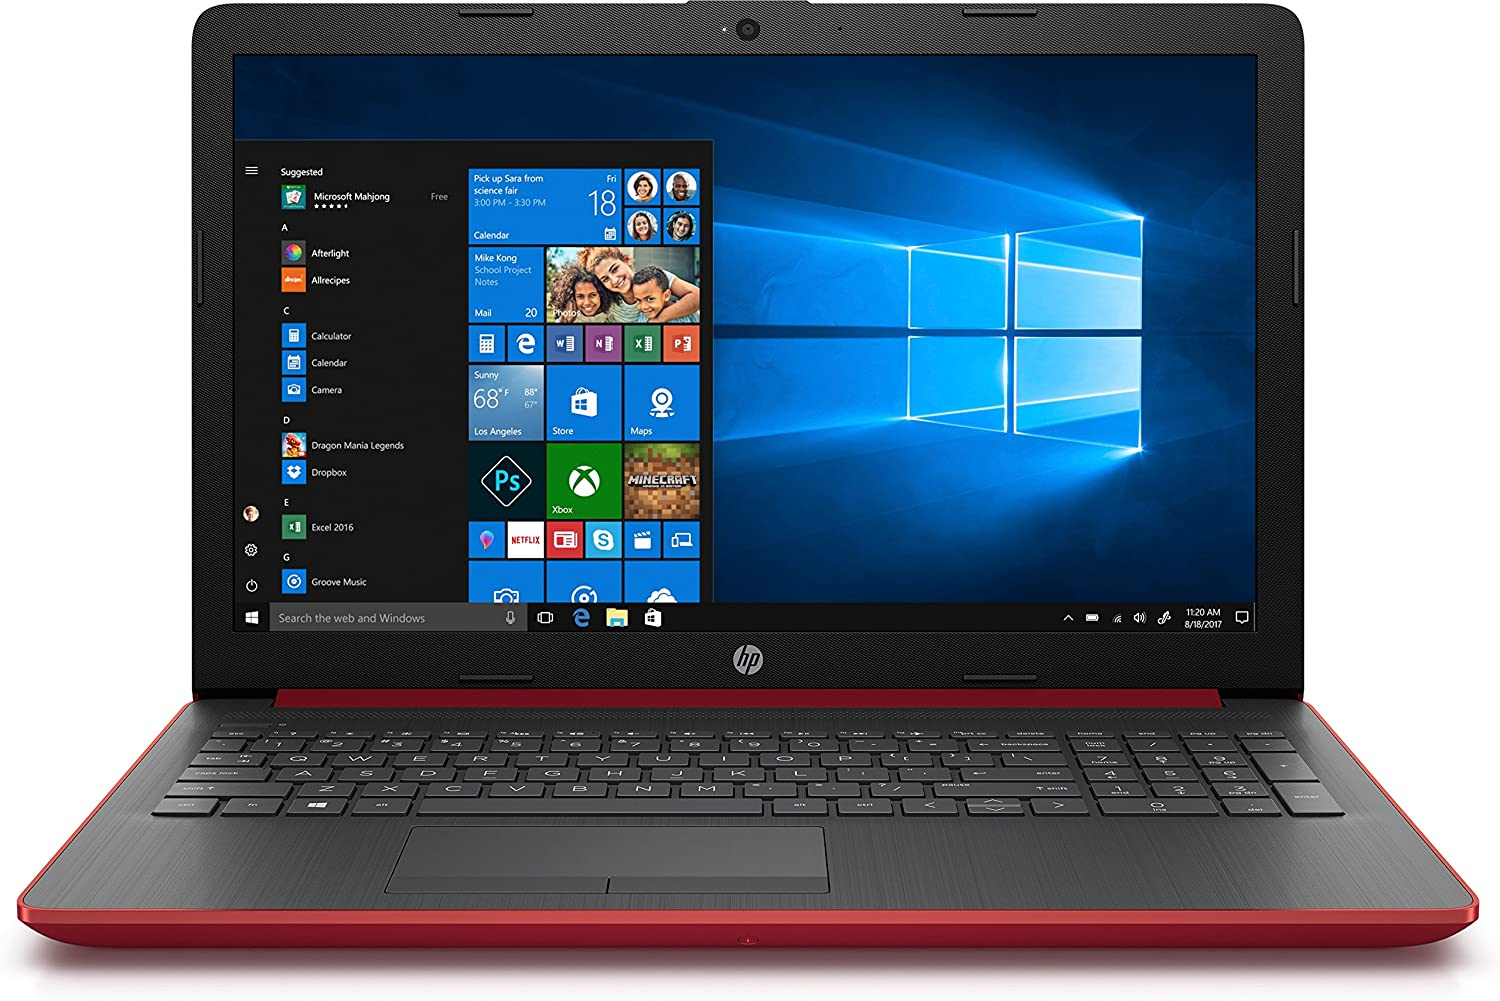 Portátil hp 15-da0123ns - i3-7020u 2.3ghz - 4gb - 128gb ssd - 15.6'/39.6cm - dvd rw - hdmi - wifi bgn - bt - Windows 10 - rojo plata.